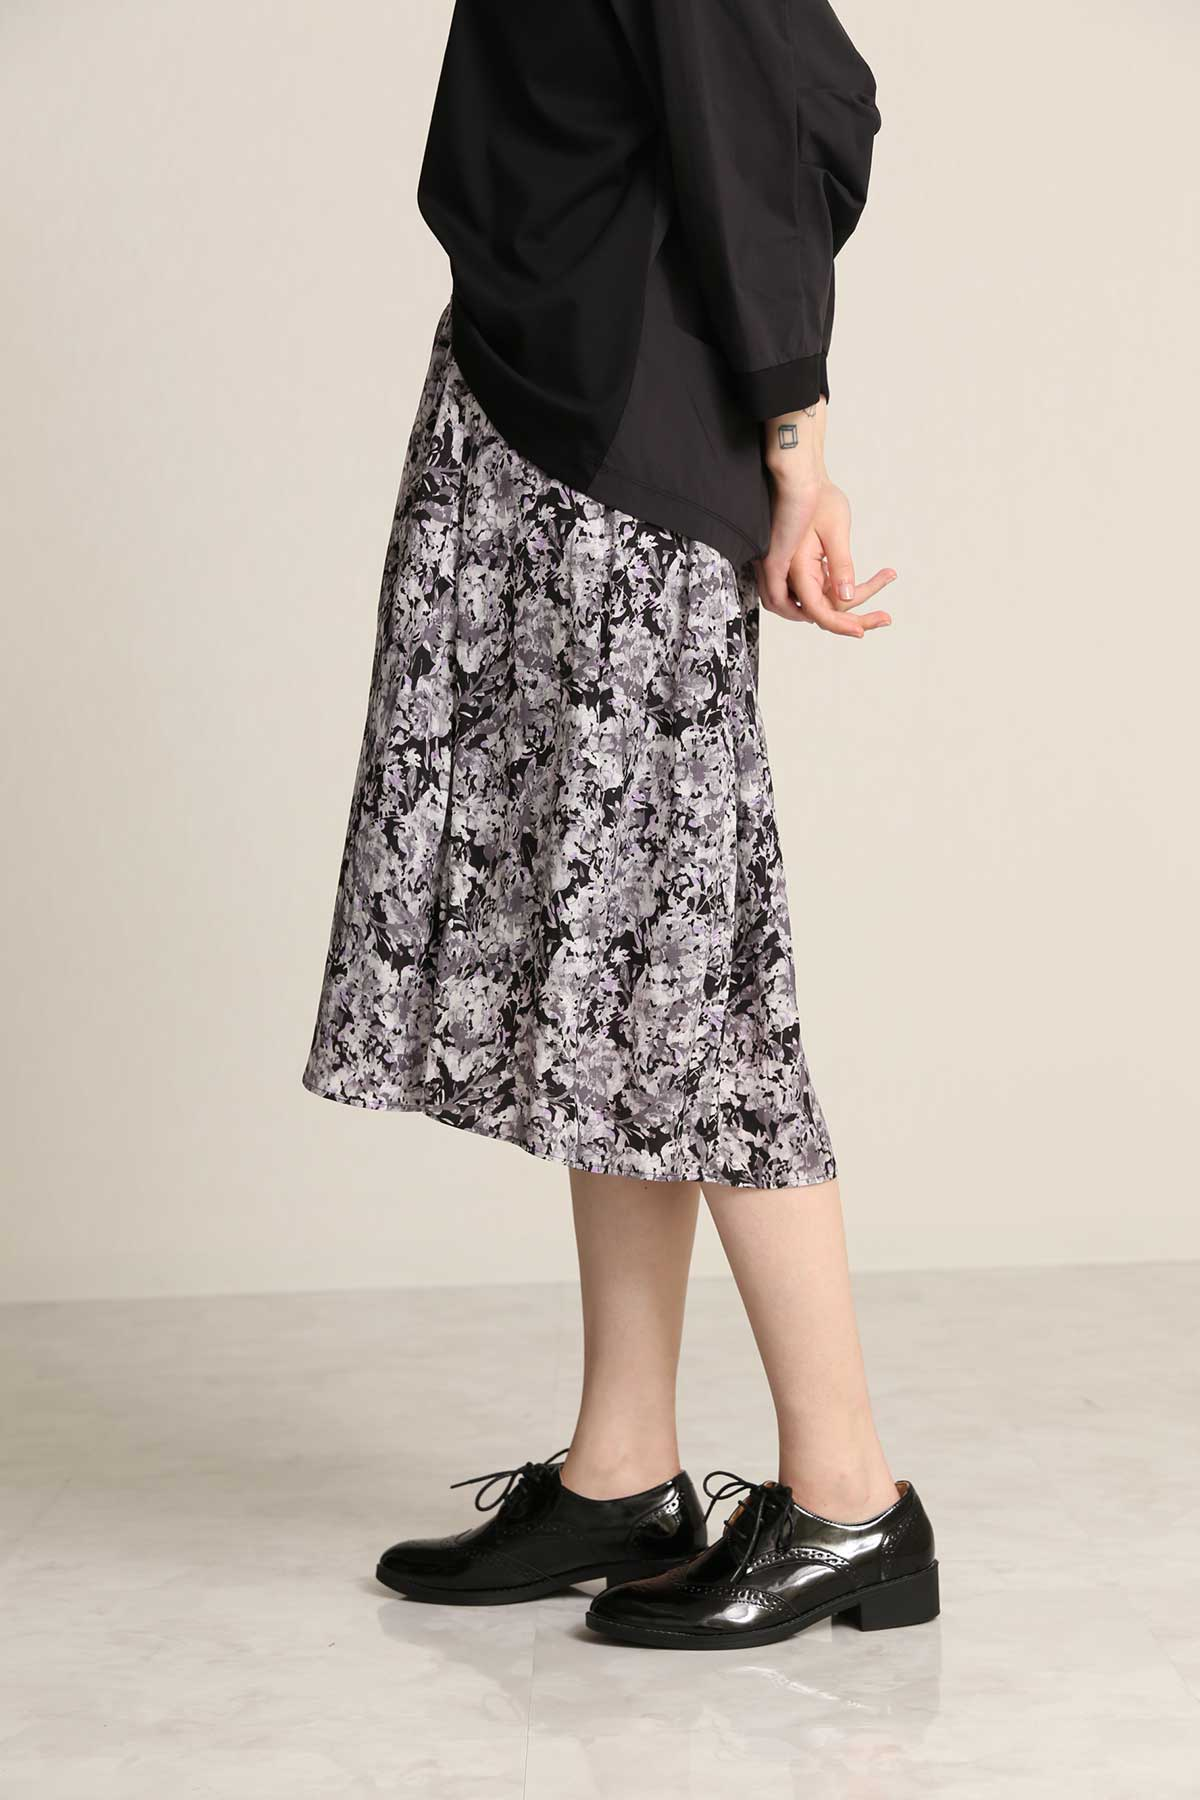 BO21-115K-black Flower-Print Egg Skirt-BLACK-【BO21-115K】